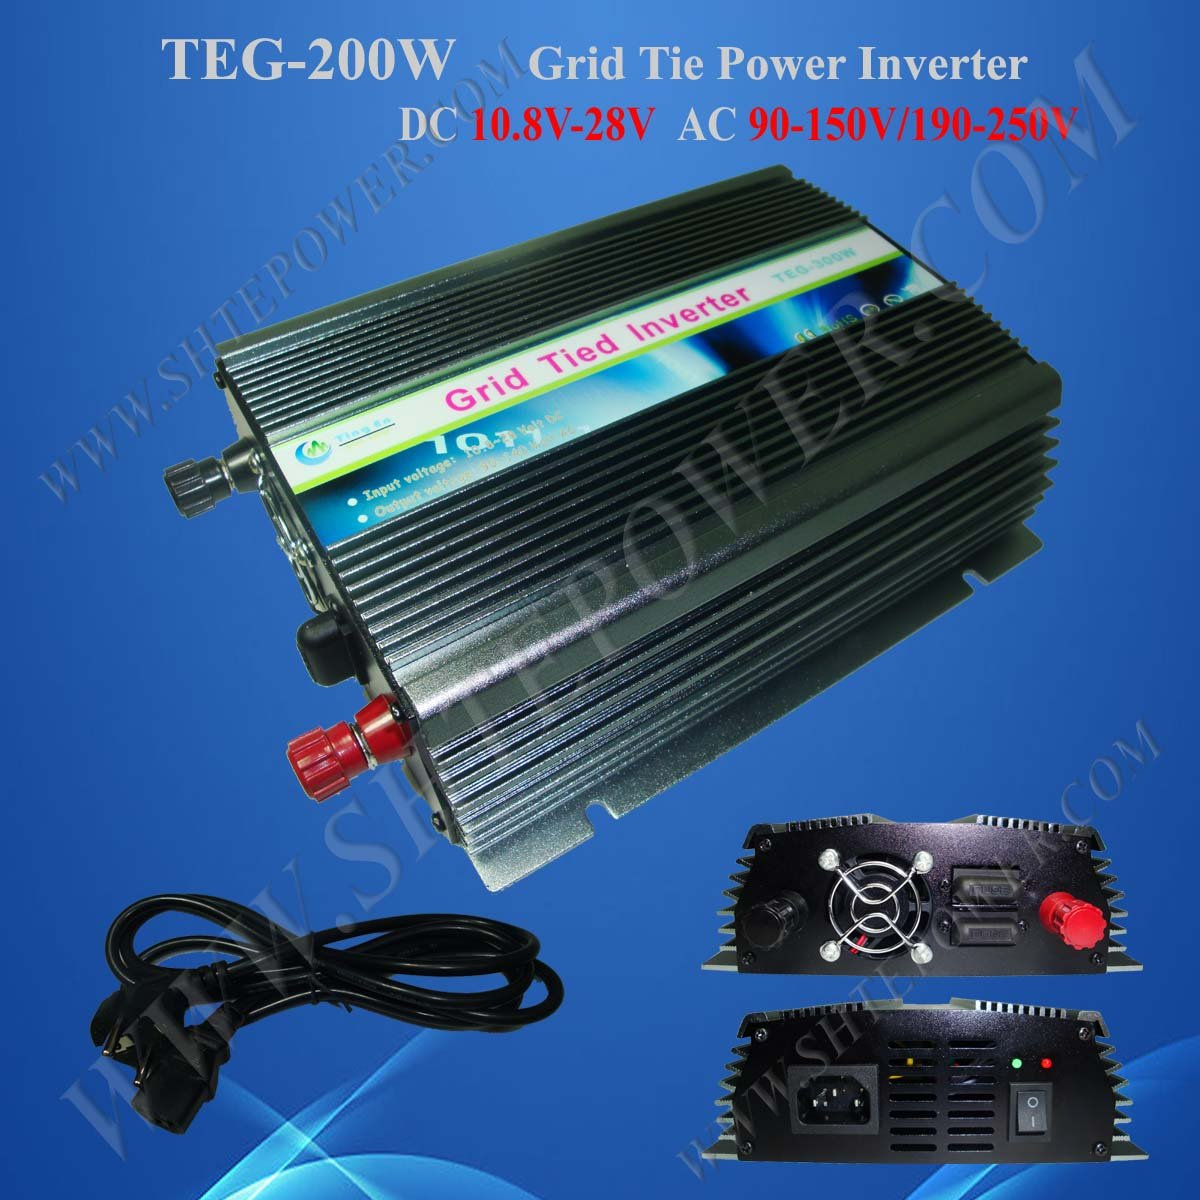 200W Power Inverter for Solar Panel On Grid System, DC 10.8V-28V to AC 90V-150V, One Year Warranty, High Quality china manufacture sell 300w 12v to 115v car use inverter maili brand one year warranty